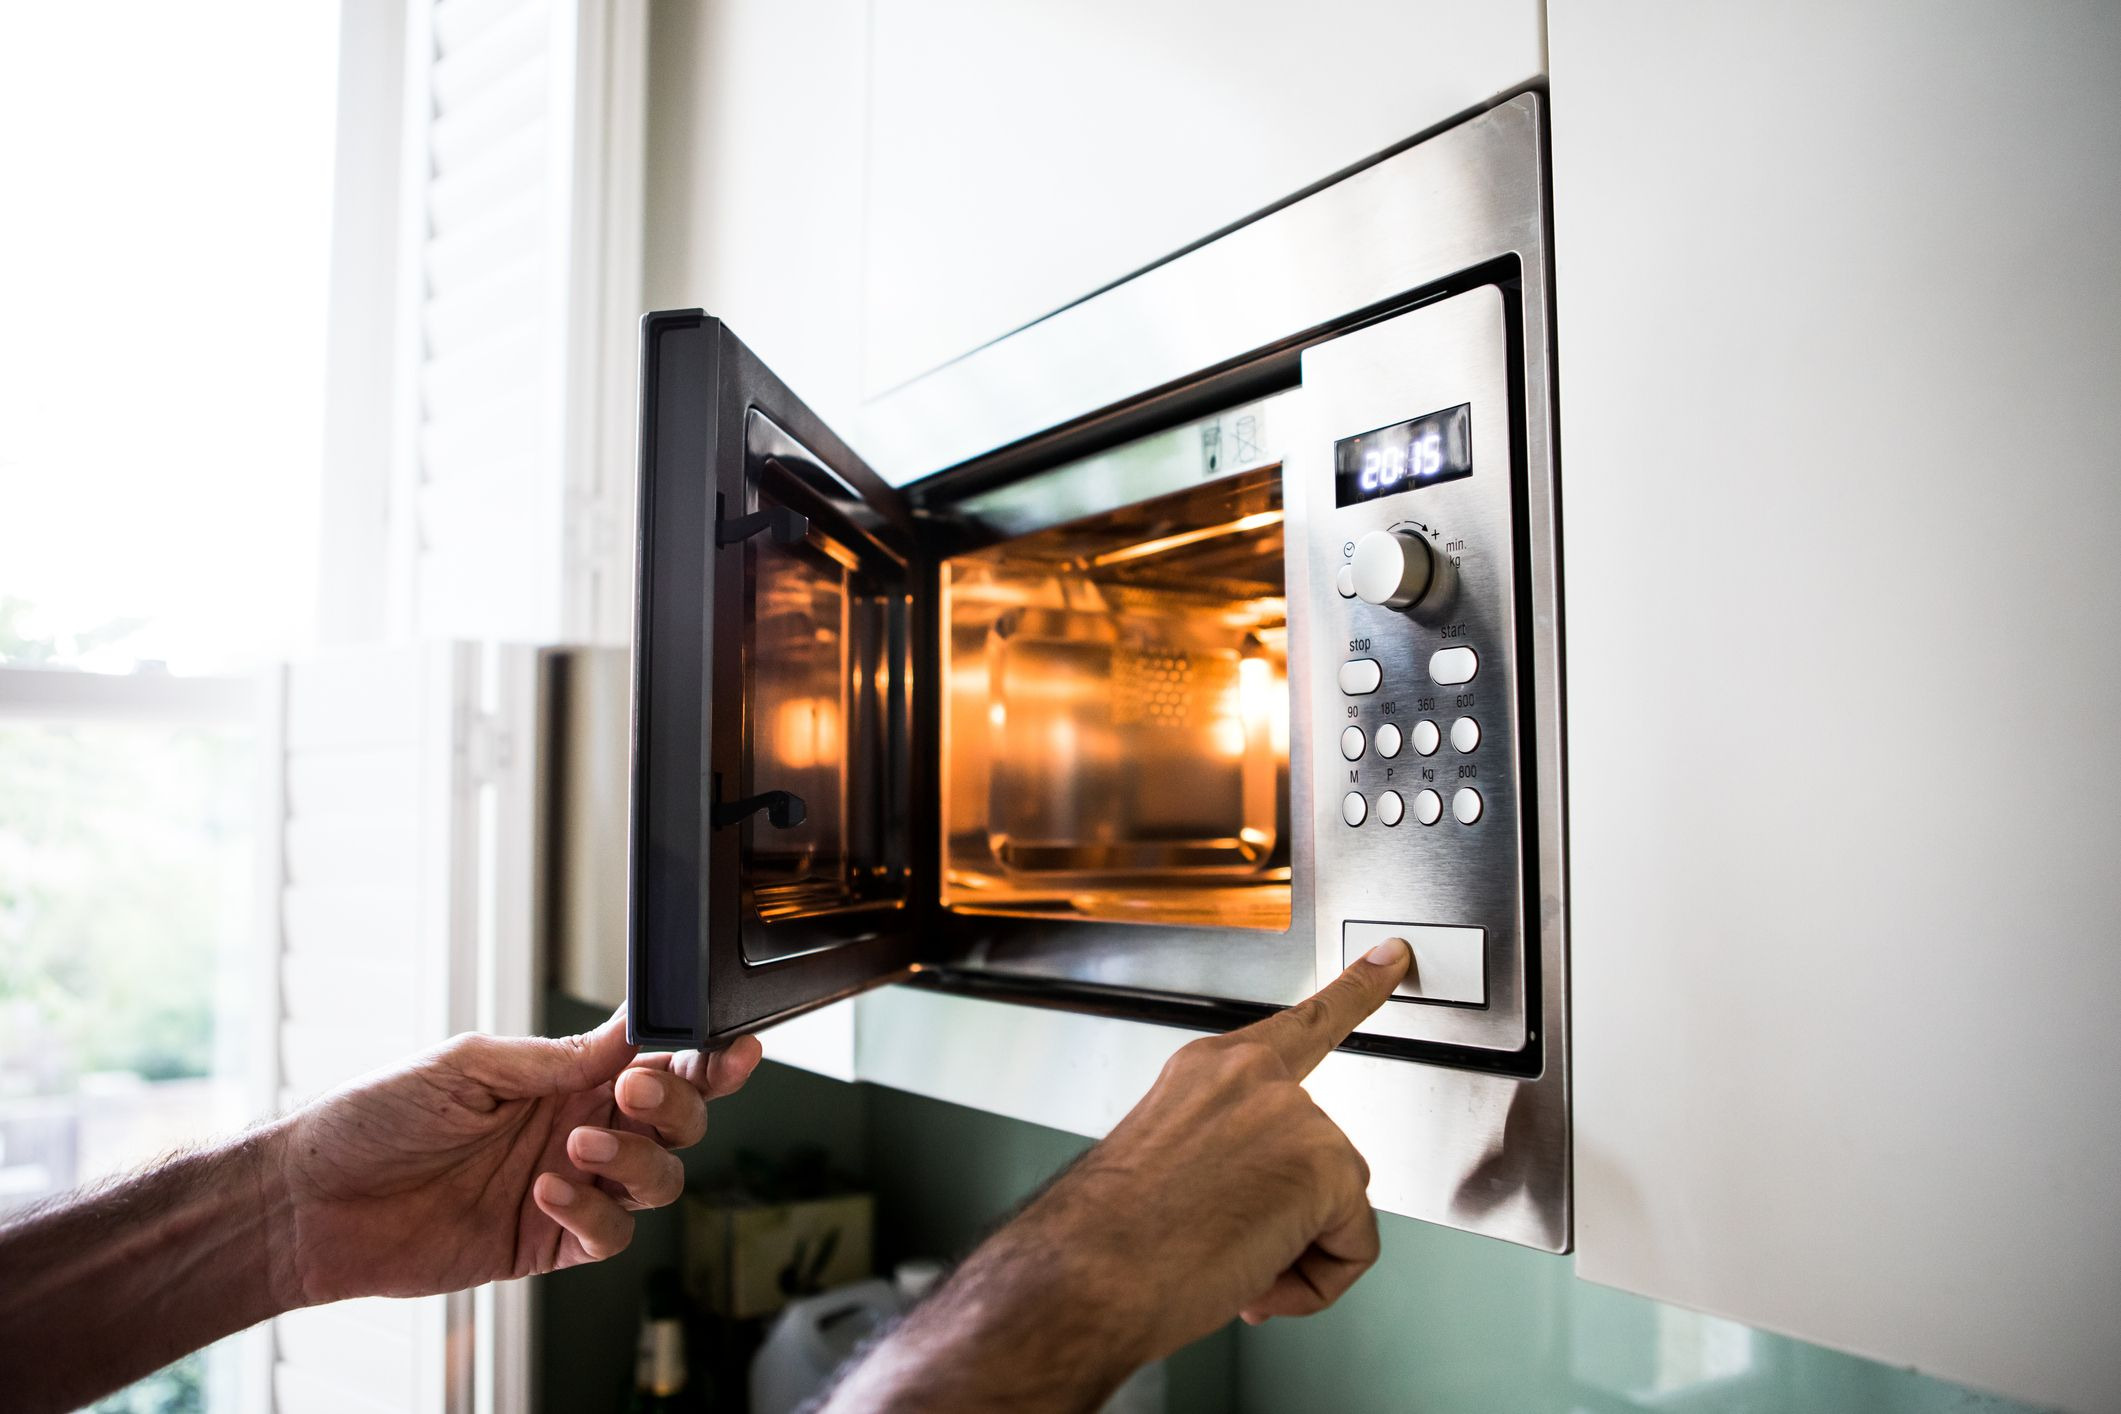 19 best microwave recipes what to